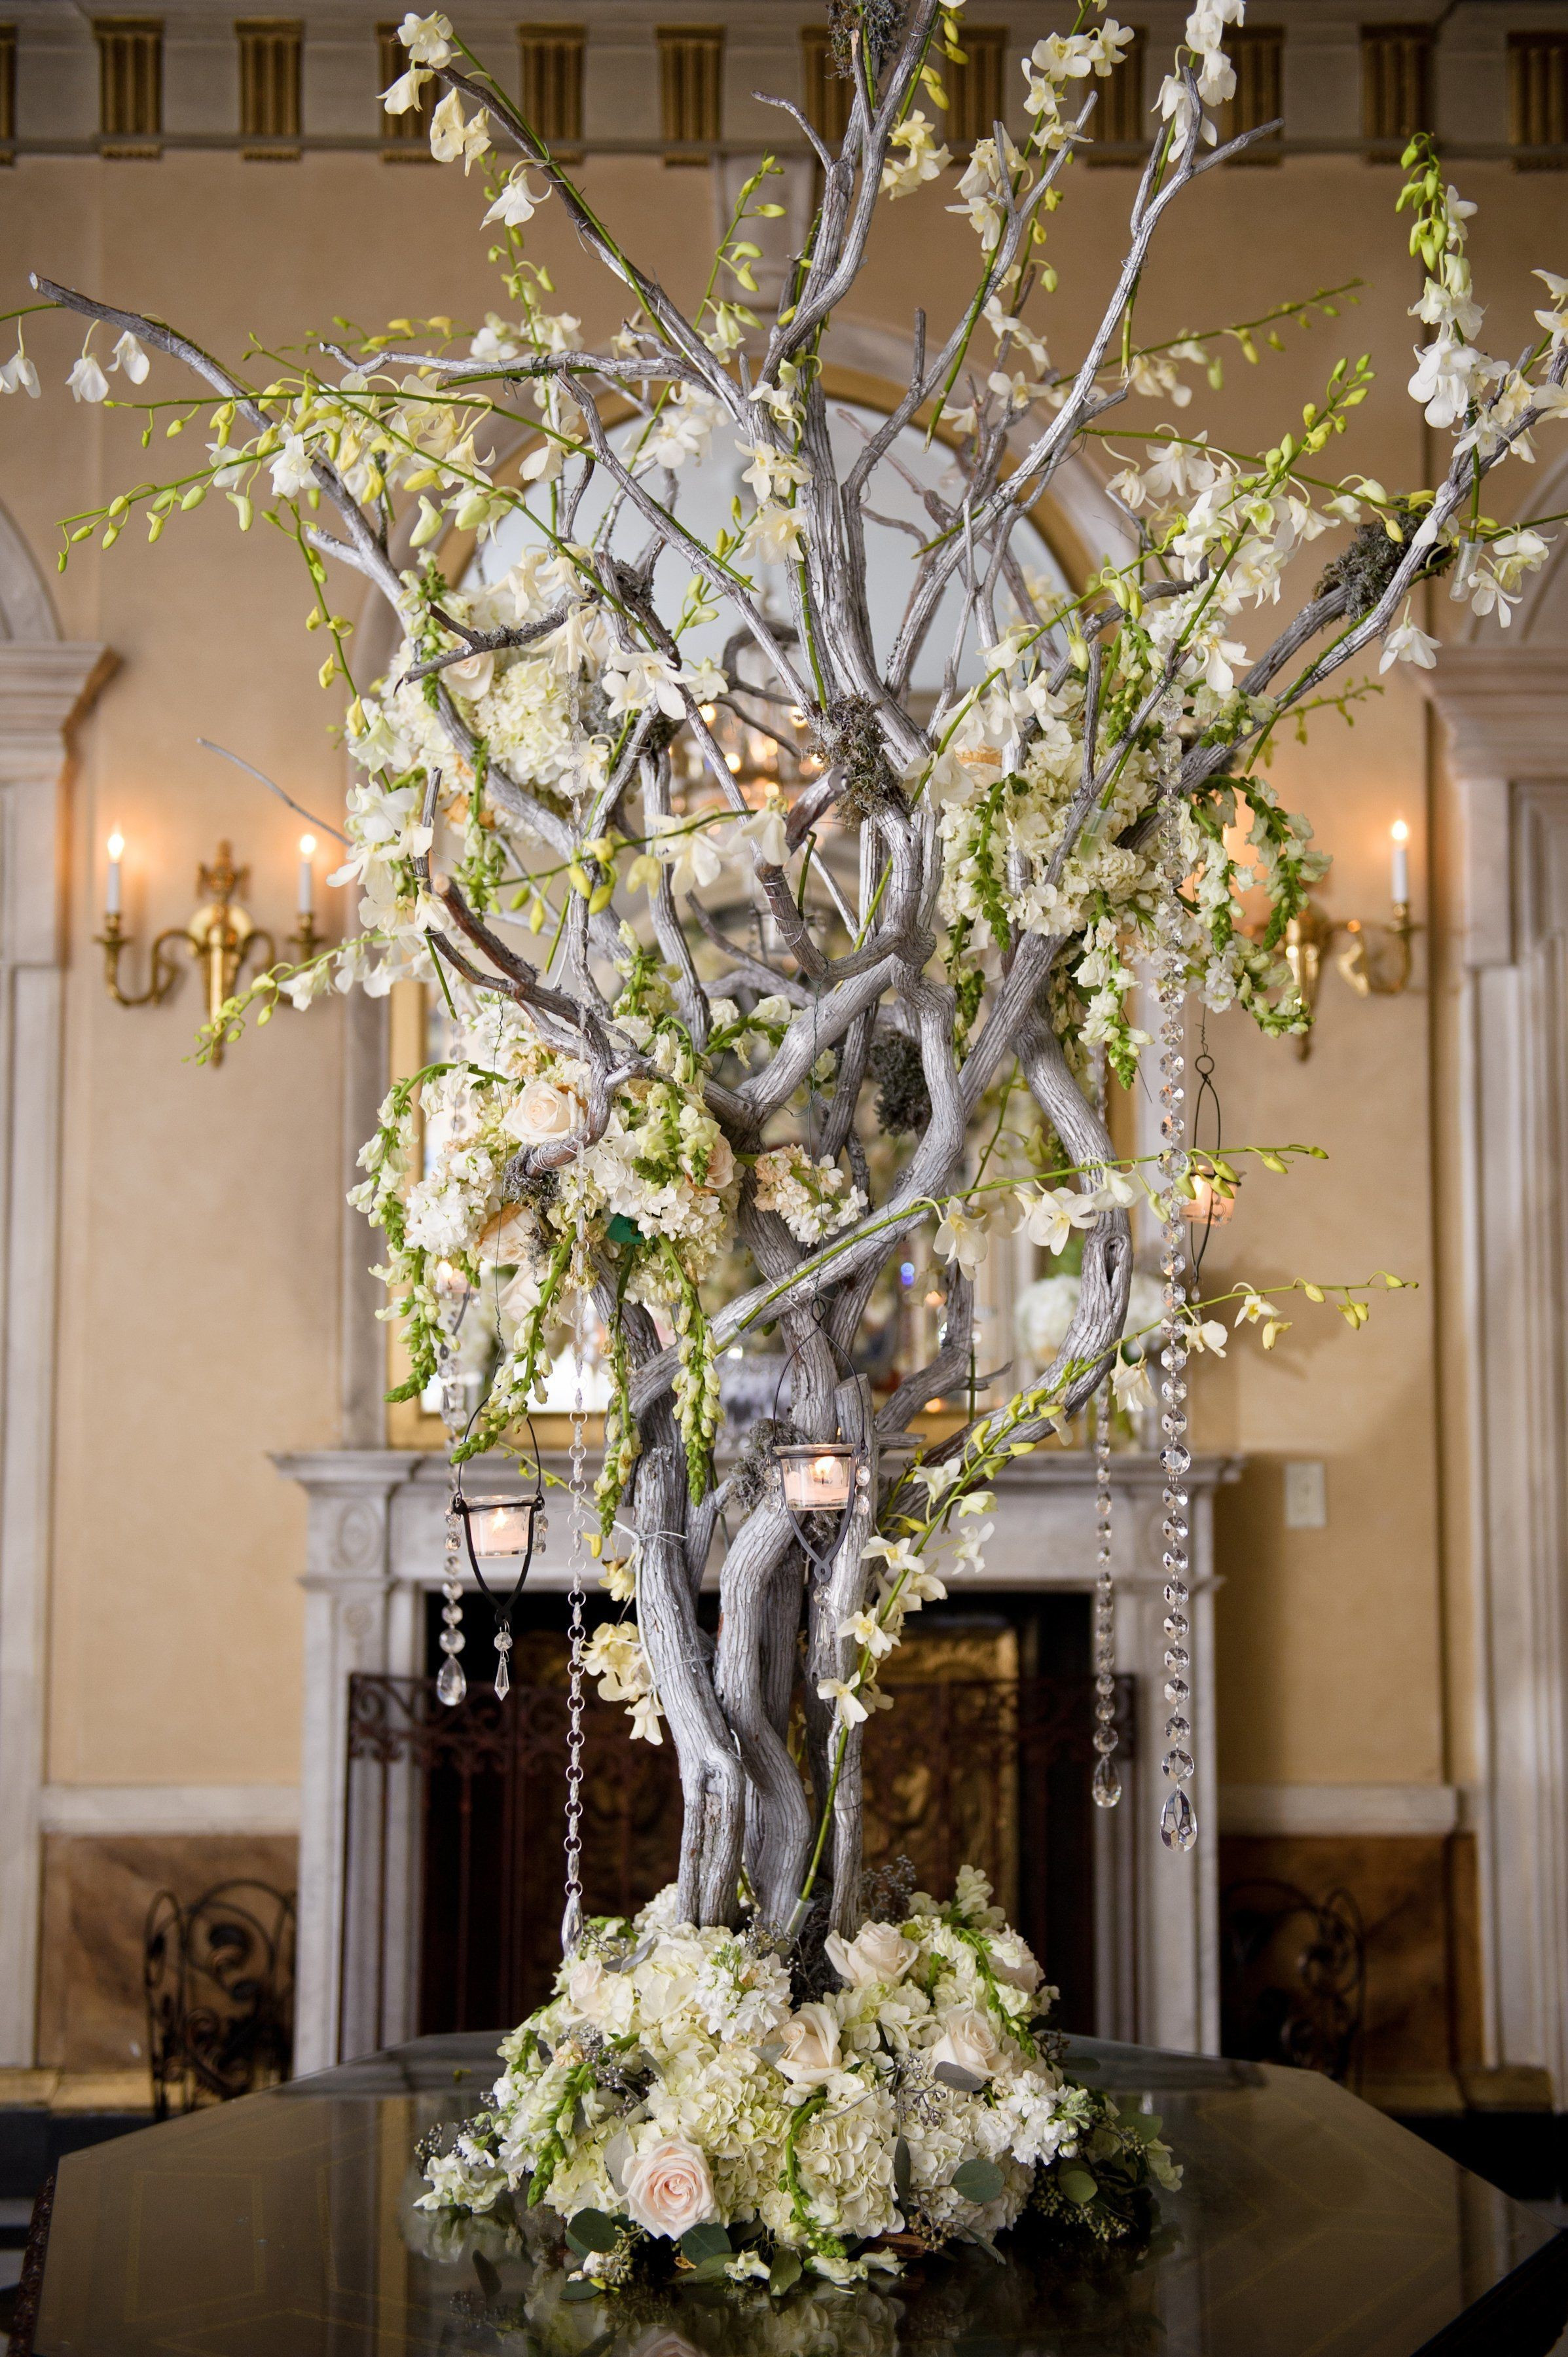 fake flowers in water vase of decorative branches for weddings awesome tall vase centerpiece ideas with decorative branches for weddings best of a tall arrangement of manzanita branches dripping with white blooms